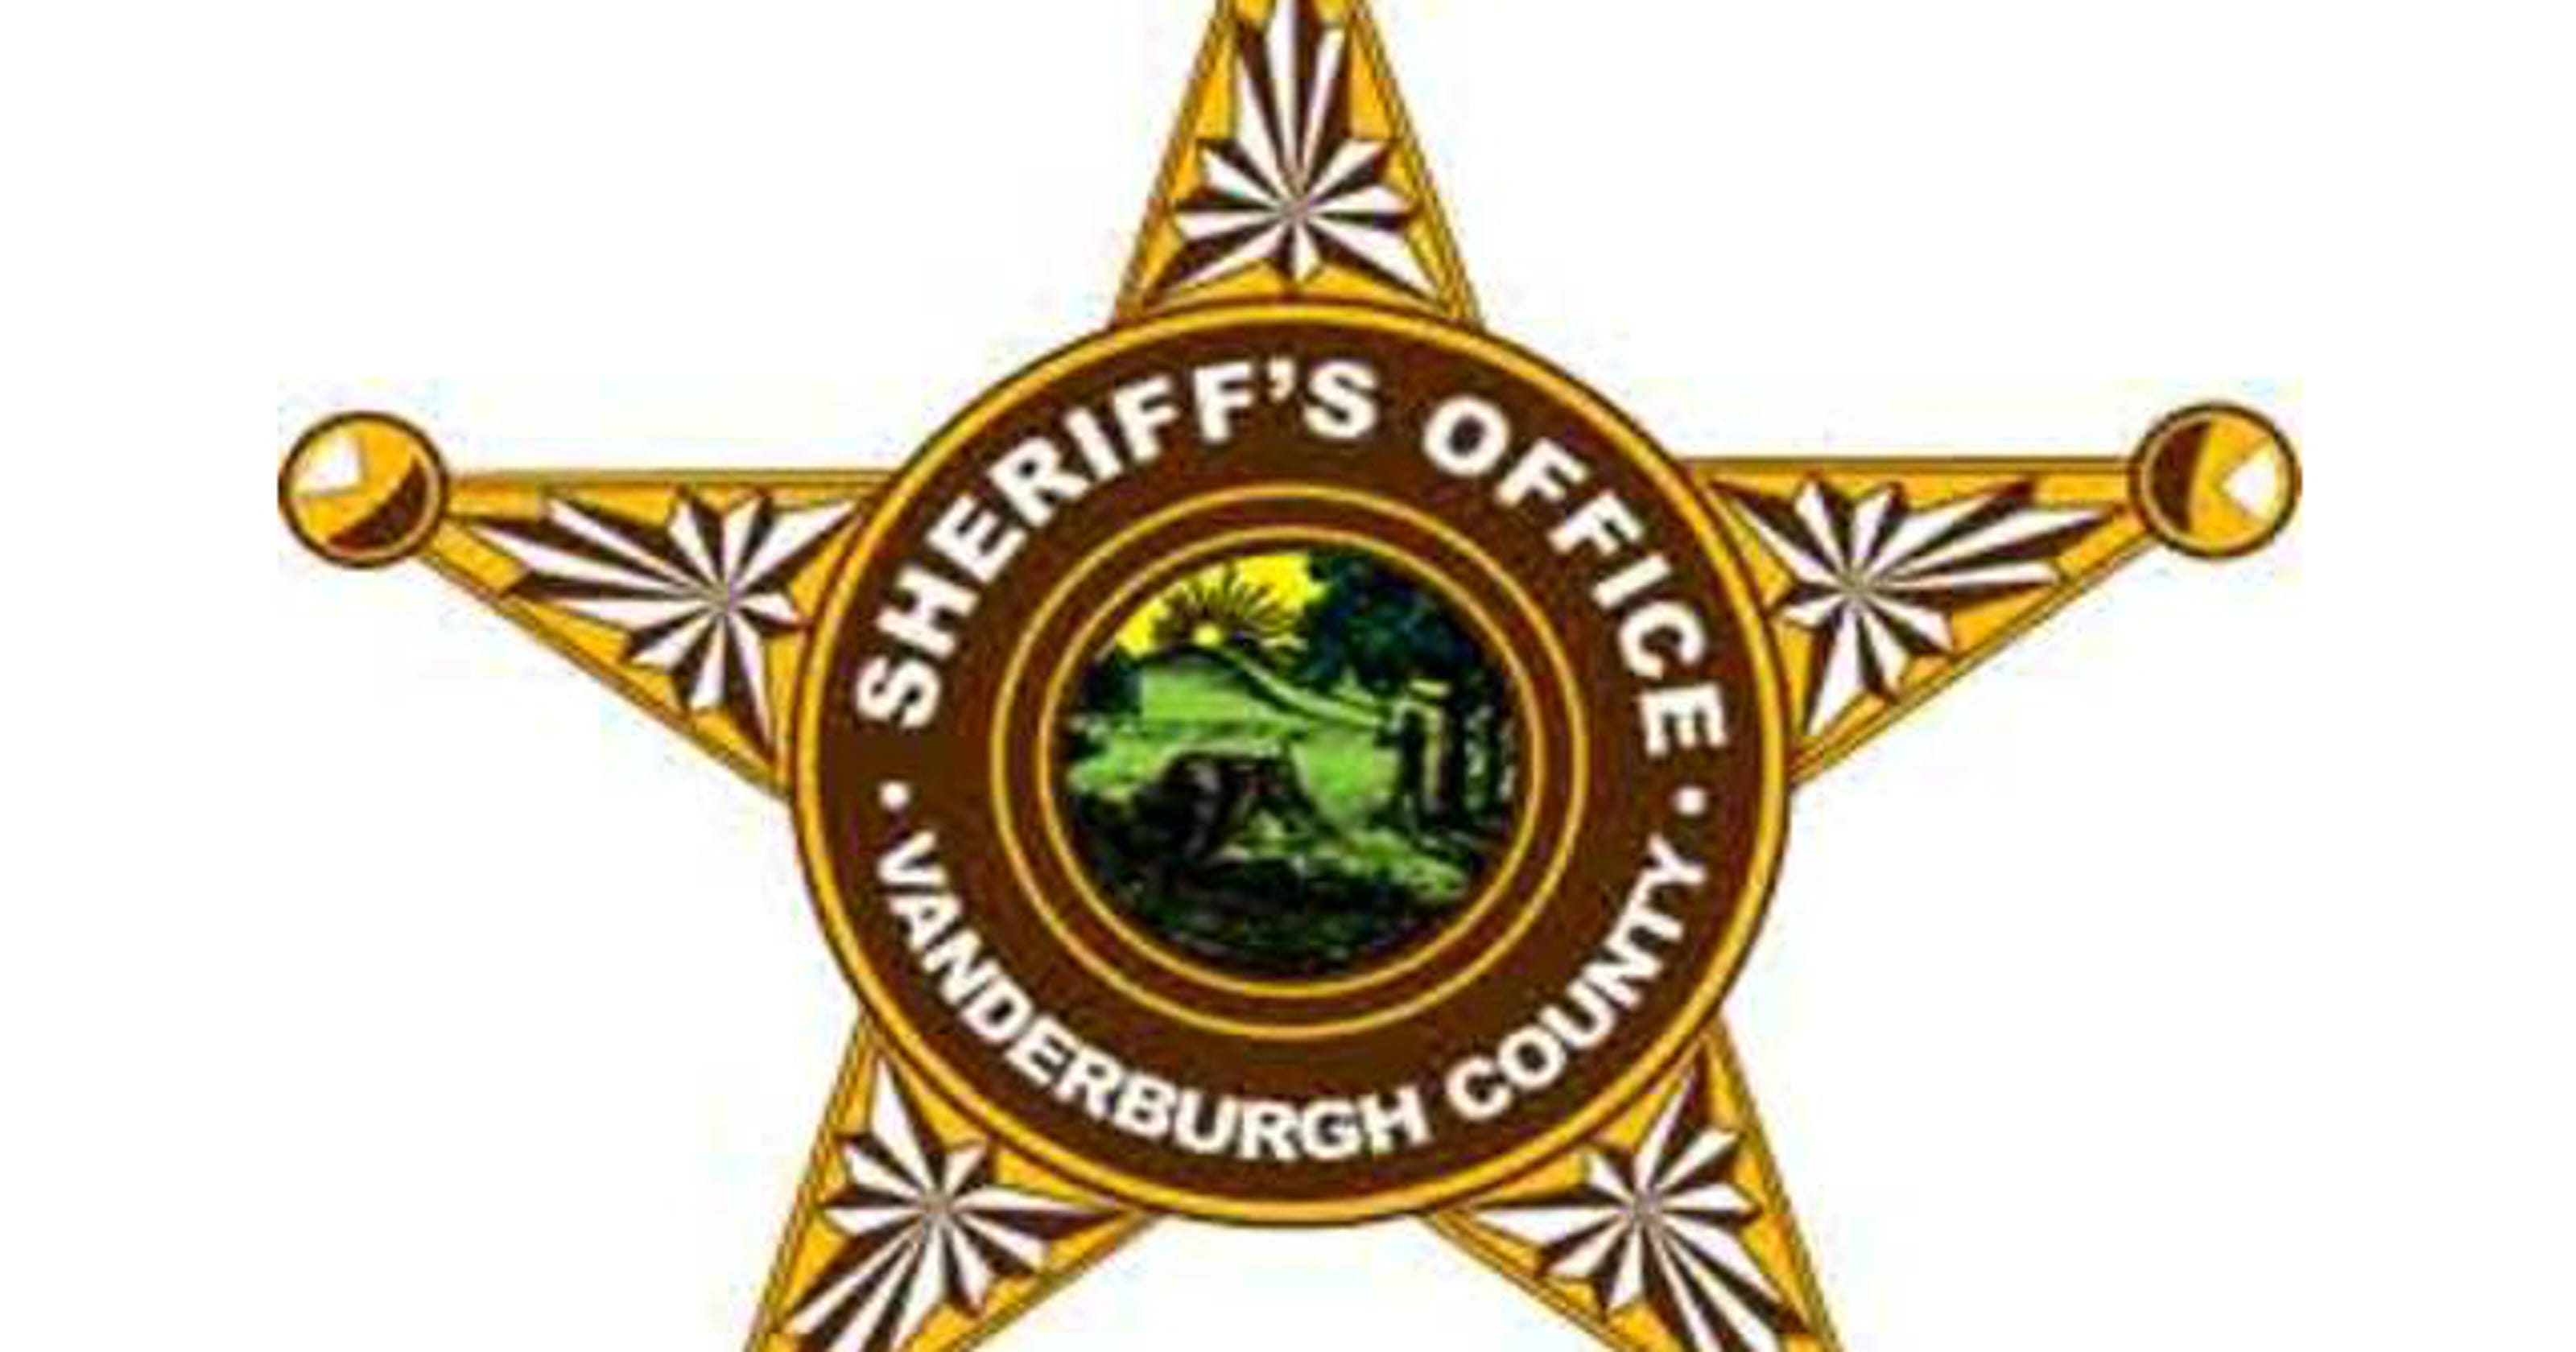 Vanderburgh County Sheriff's Office issues new list of outstanding